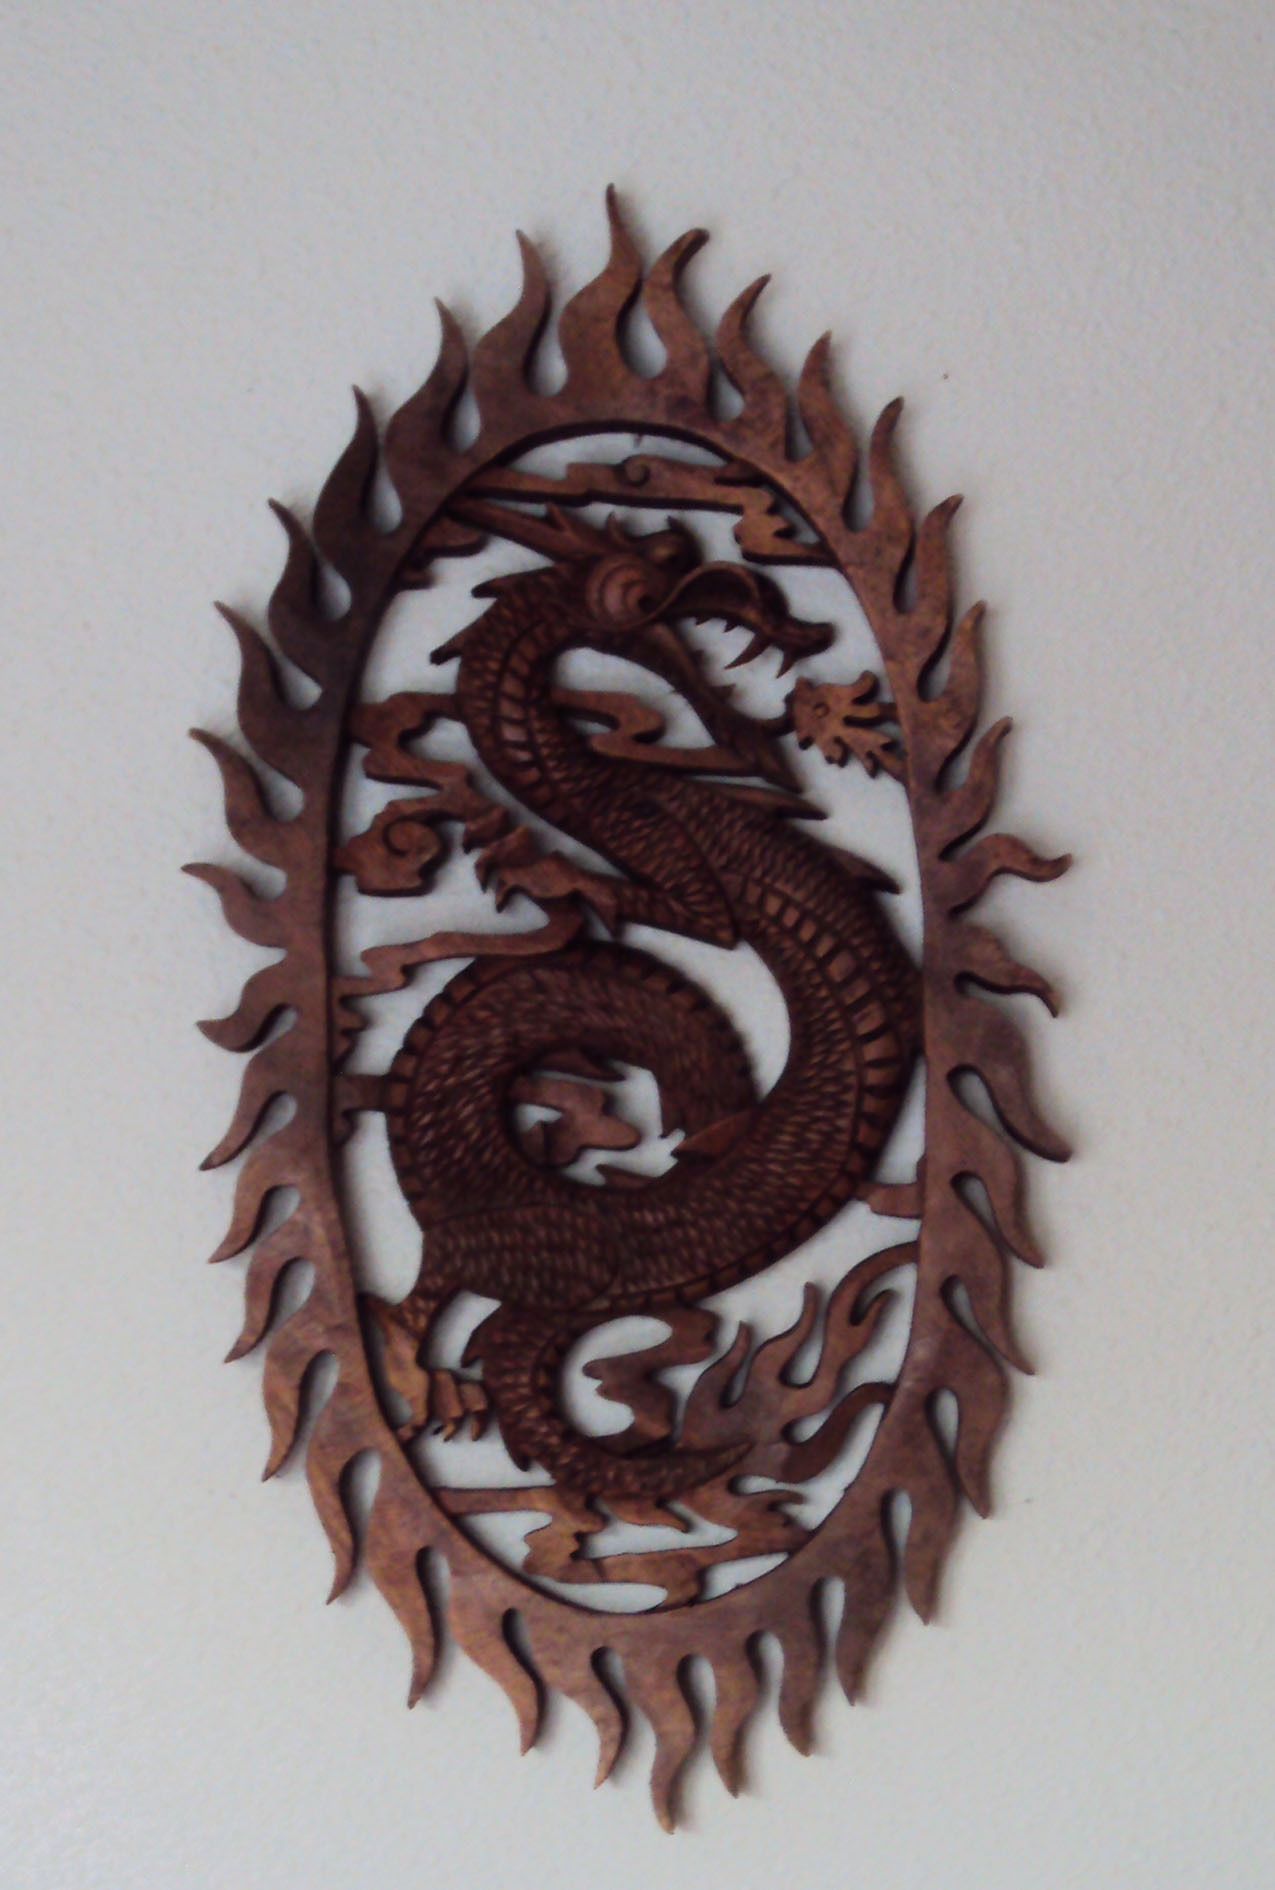 Dragon Wall Mounting Sculpture in Oakwood